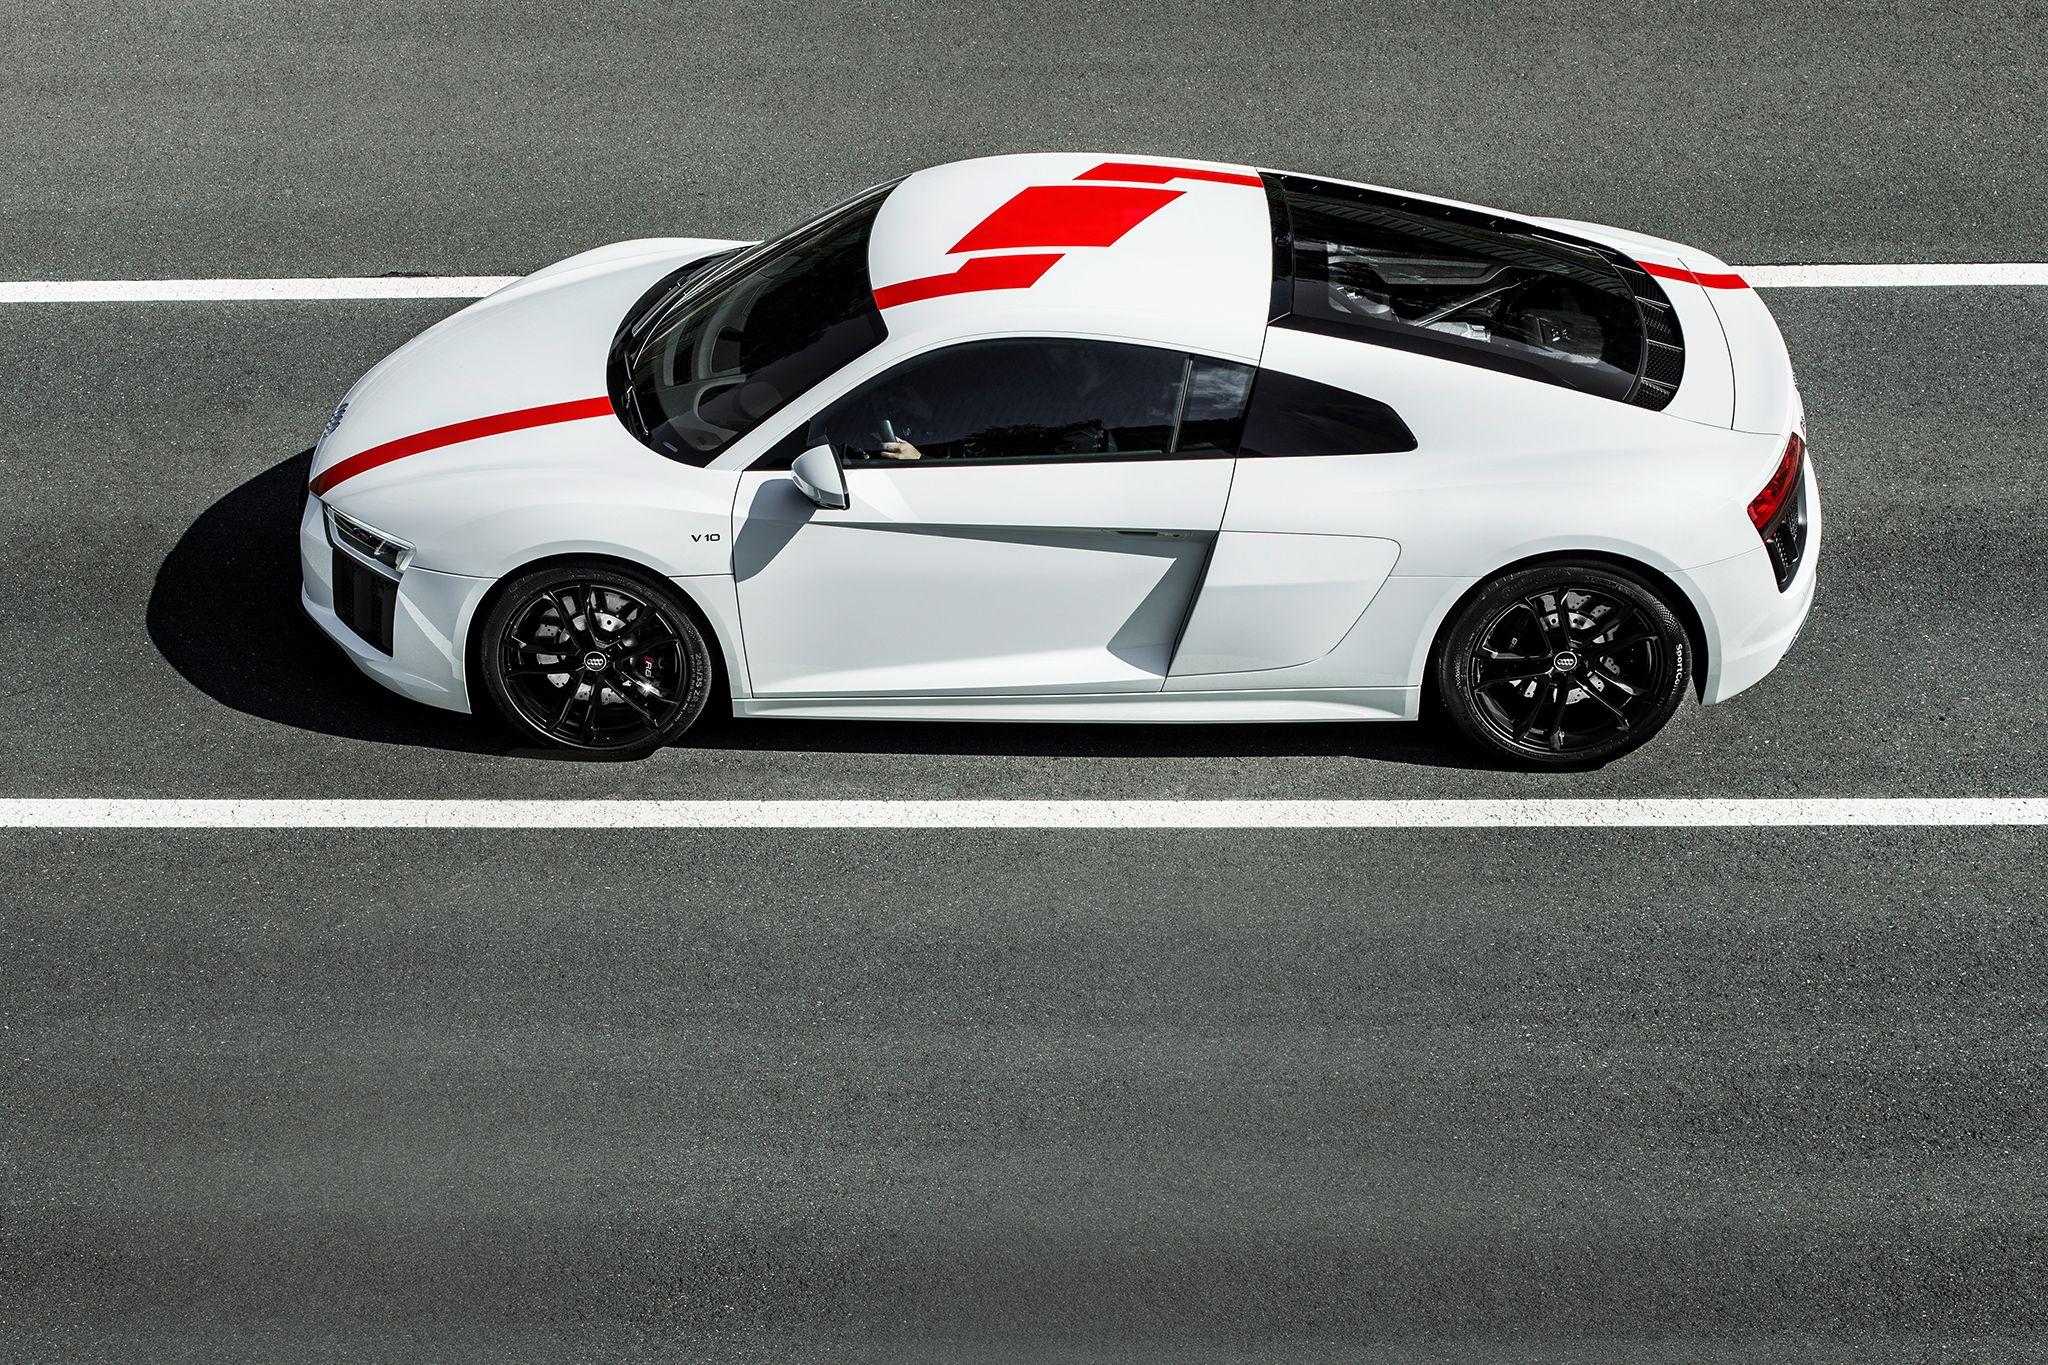 Carnews 2018 Audi R8 V10 Rws Debuts At Frankfurt With Rwd For The Purists